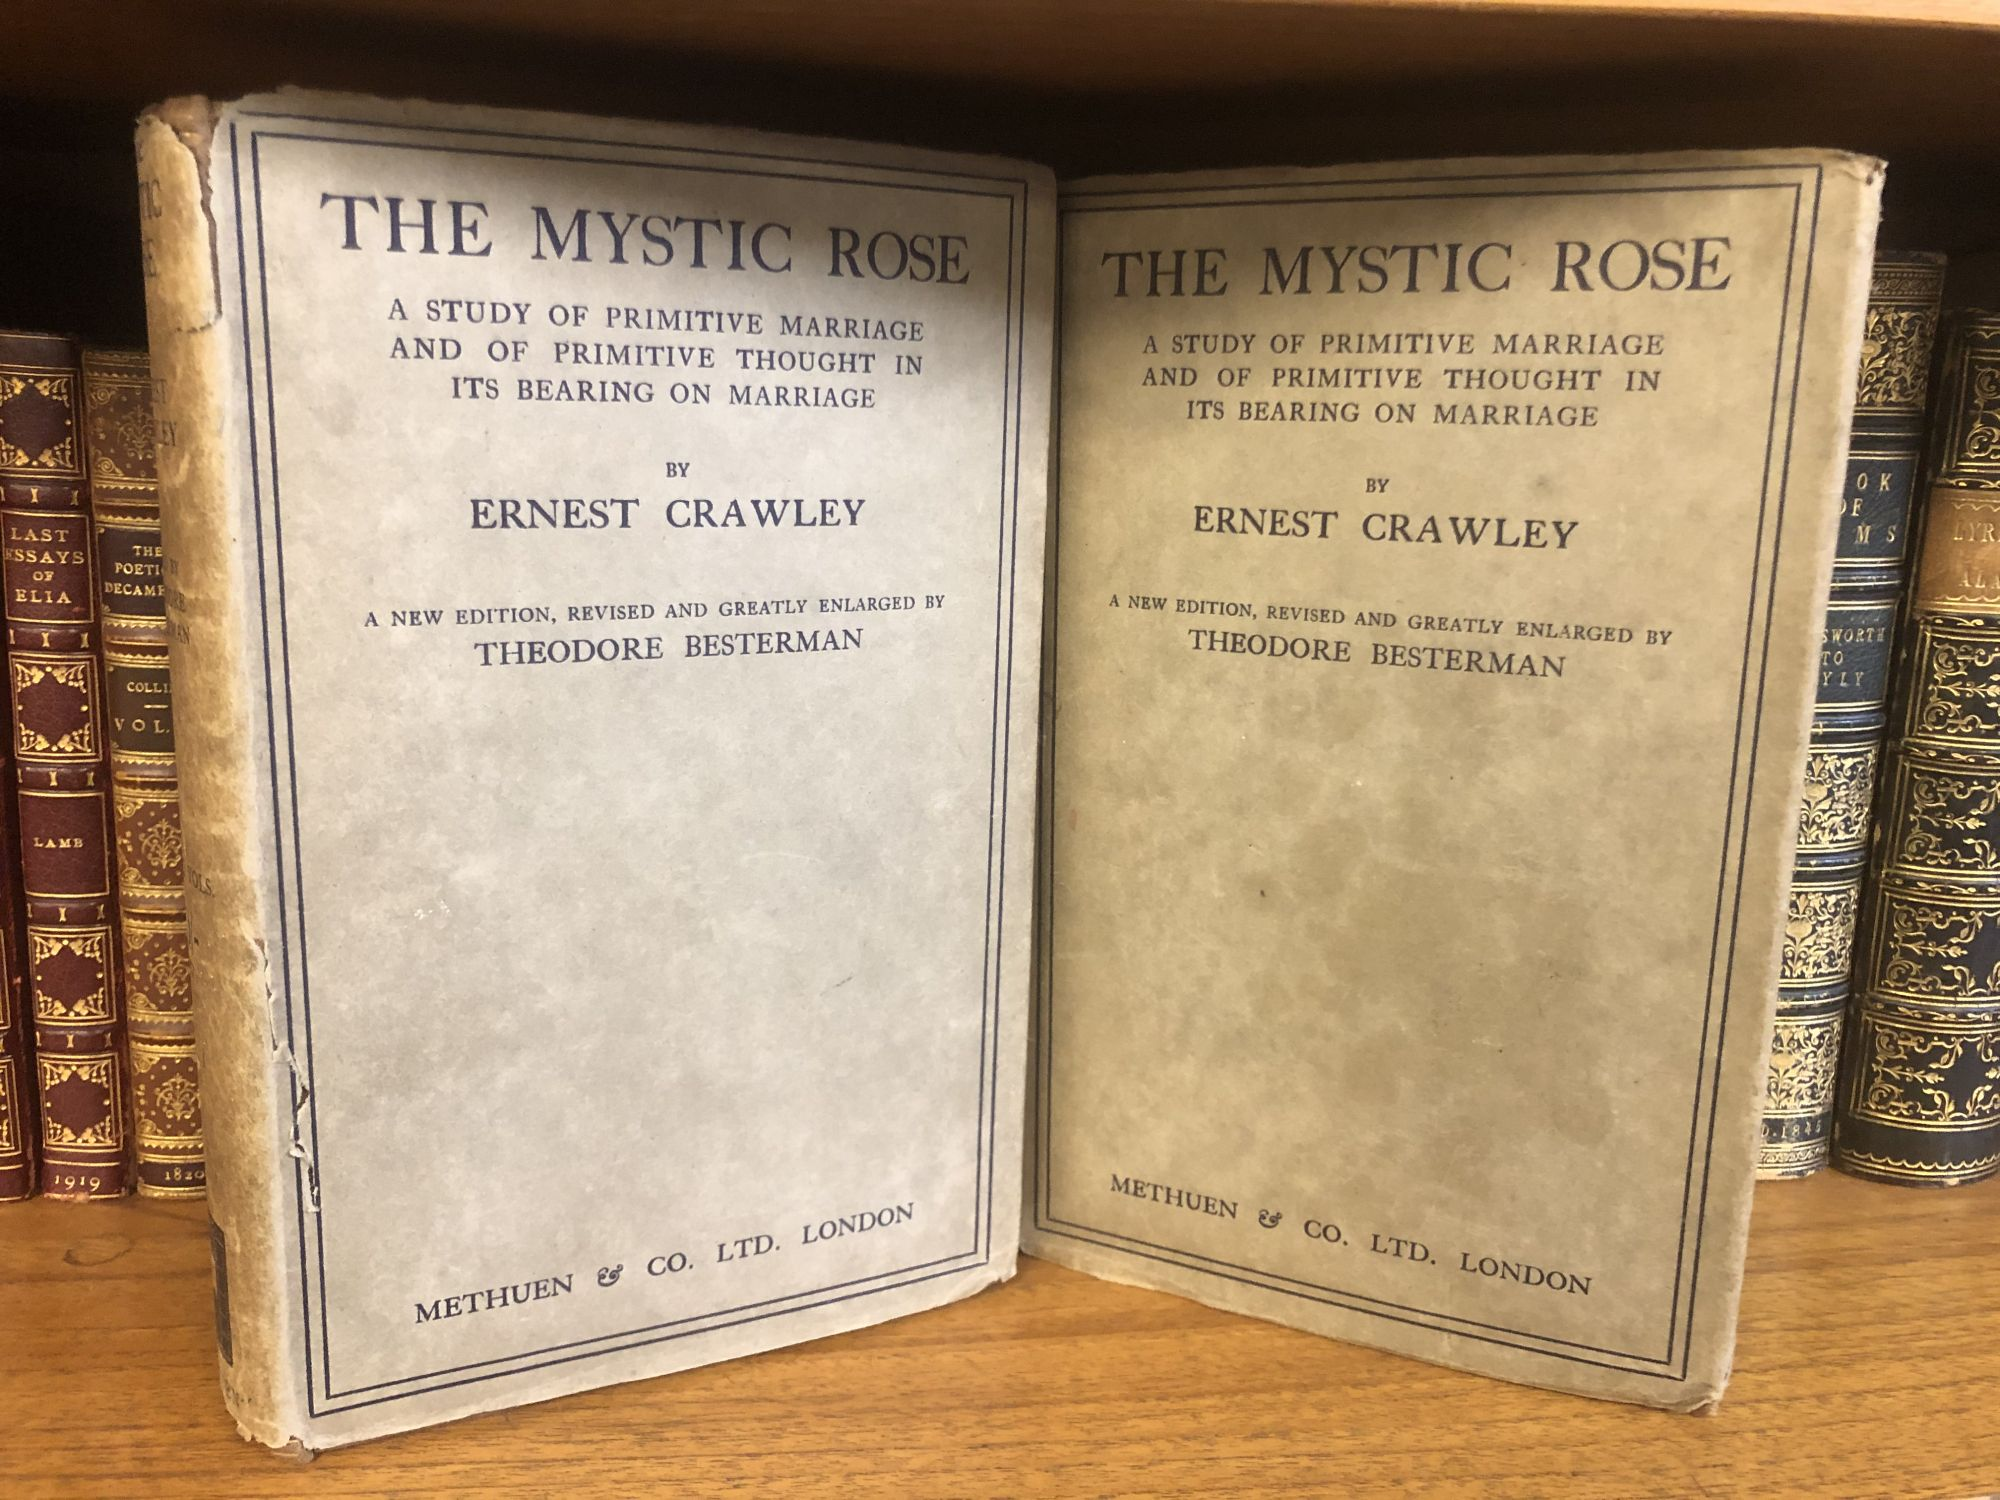 THE MYSTIC ROSE - A STUDY OF PRIMITIVE MARIAGE AND OF PRIMITIVE THOUGHT IN ITS BEARING ON MARRIAGE [TWO VOLUMES]. Ernest Crawley, Theodore Besterman.